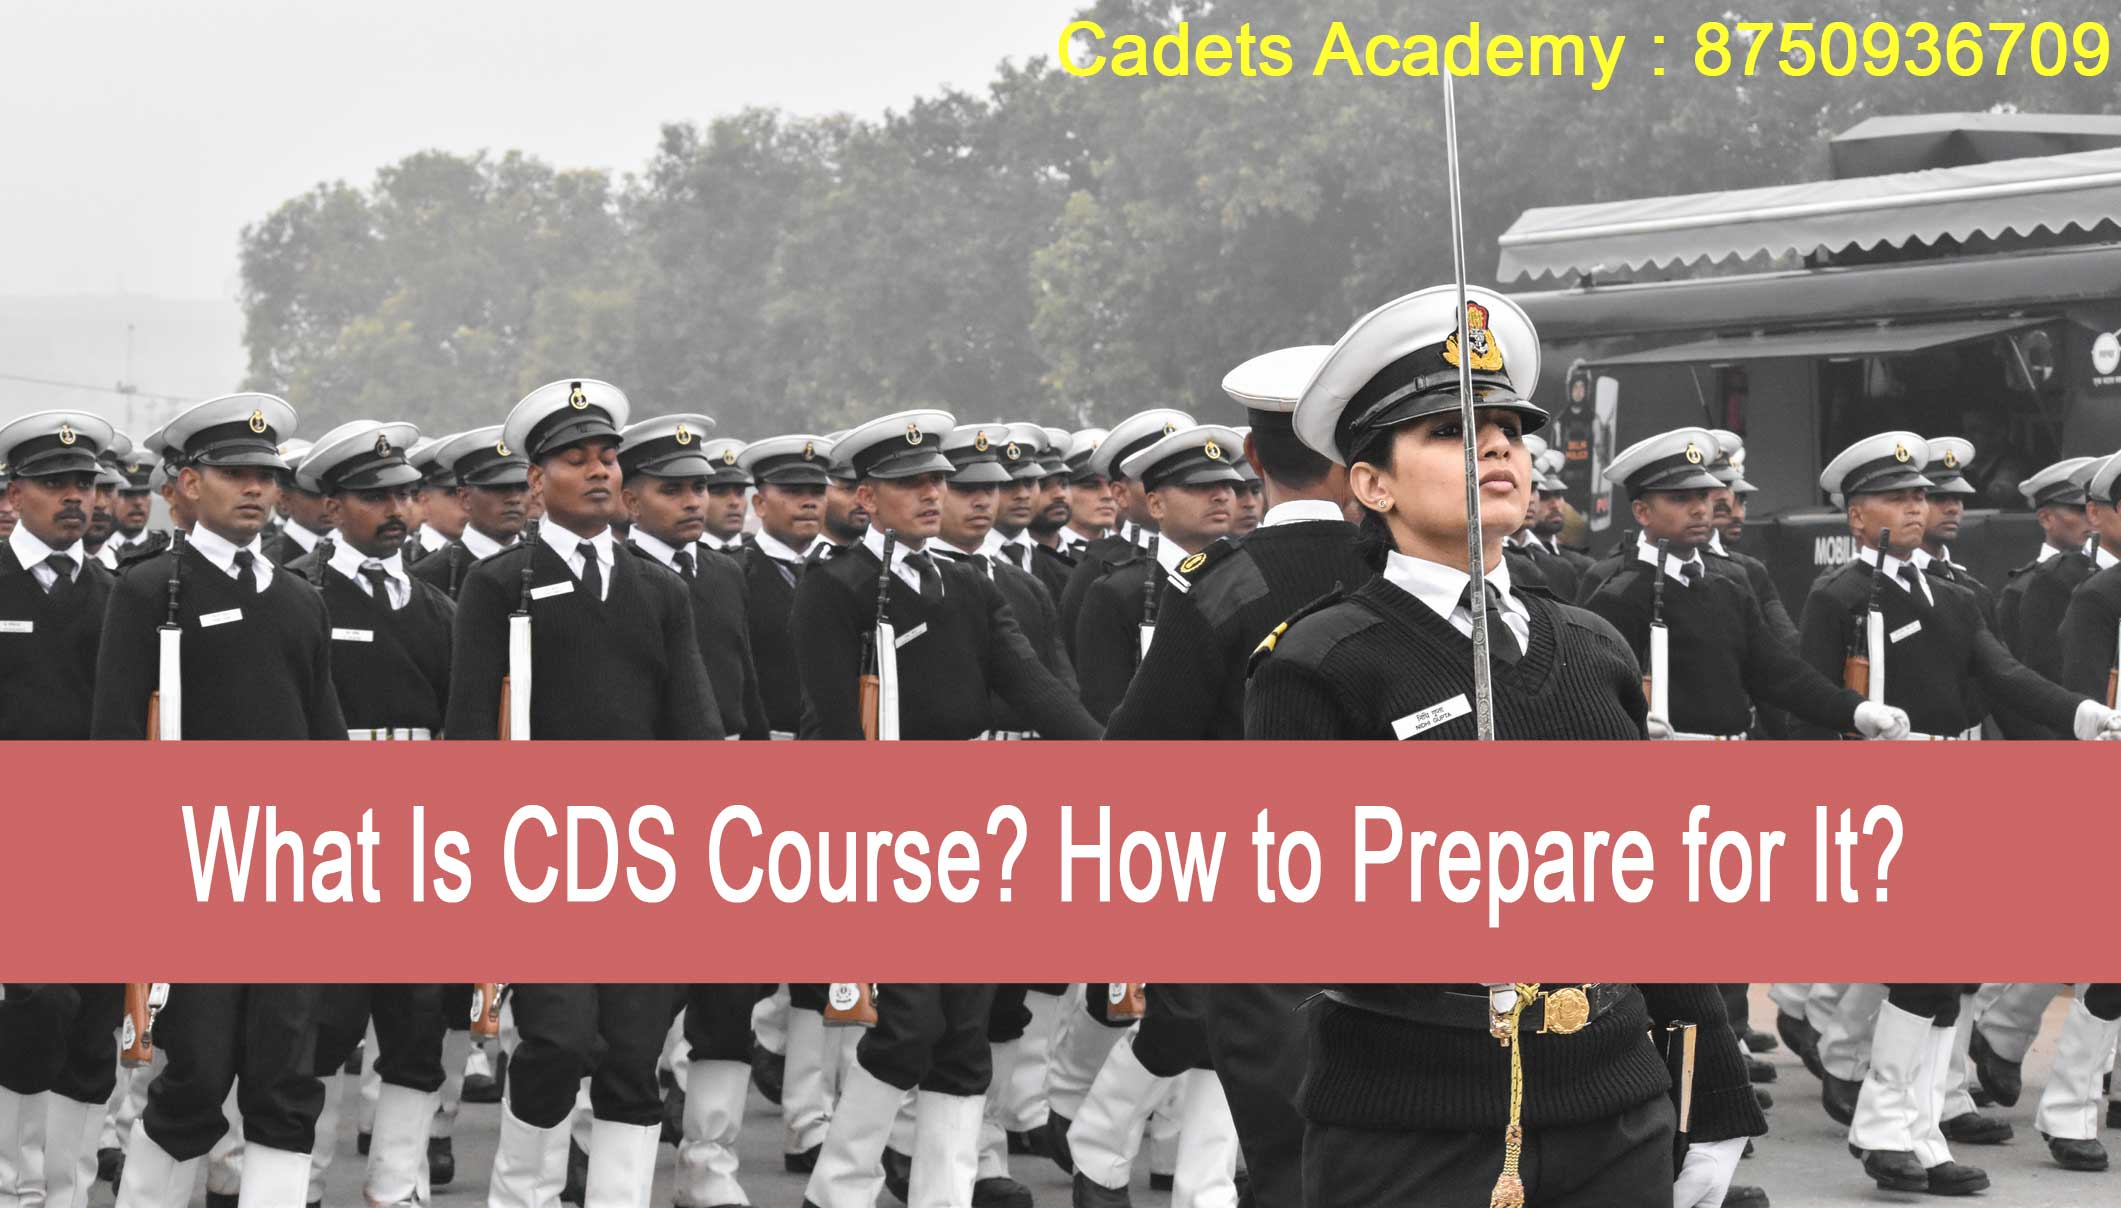 What Is CDS Course? How to Prepare for It?